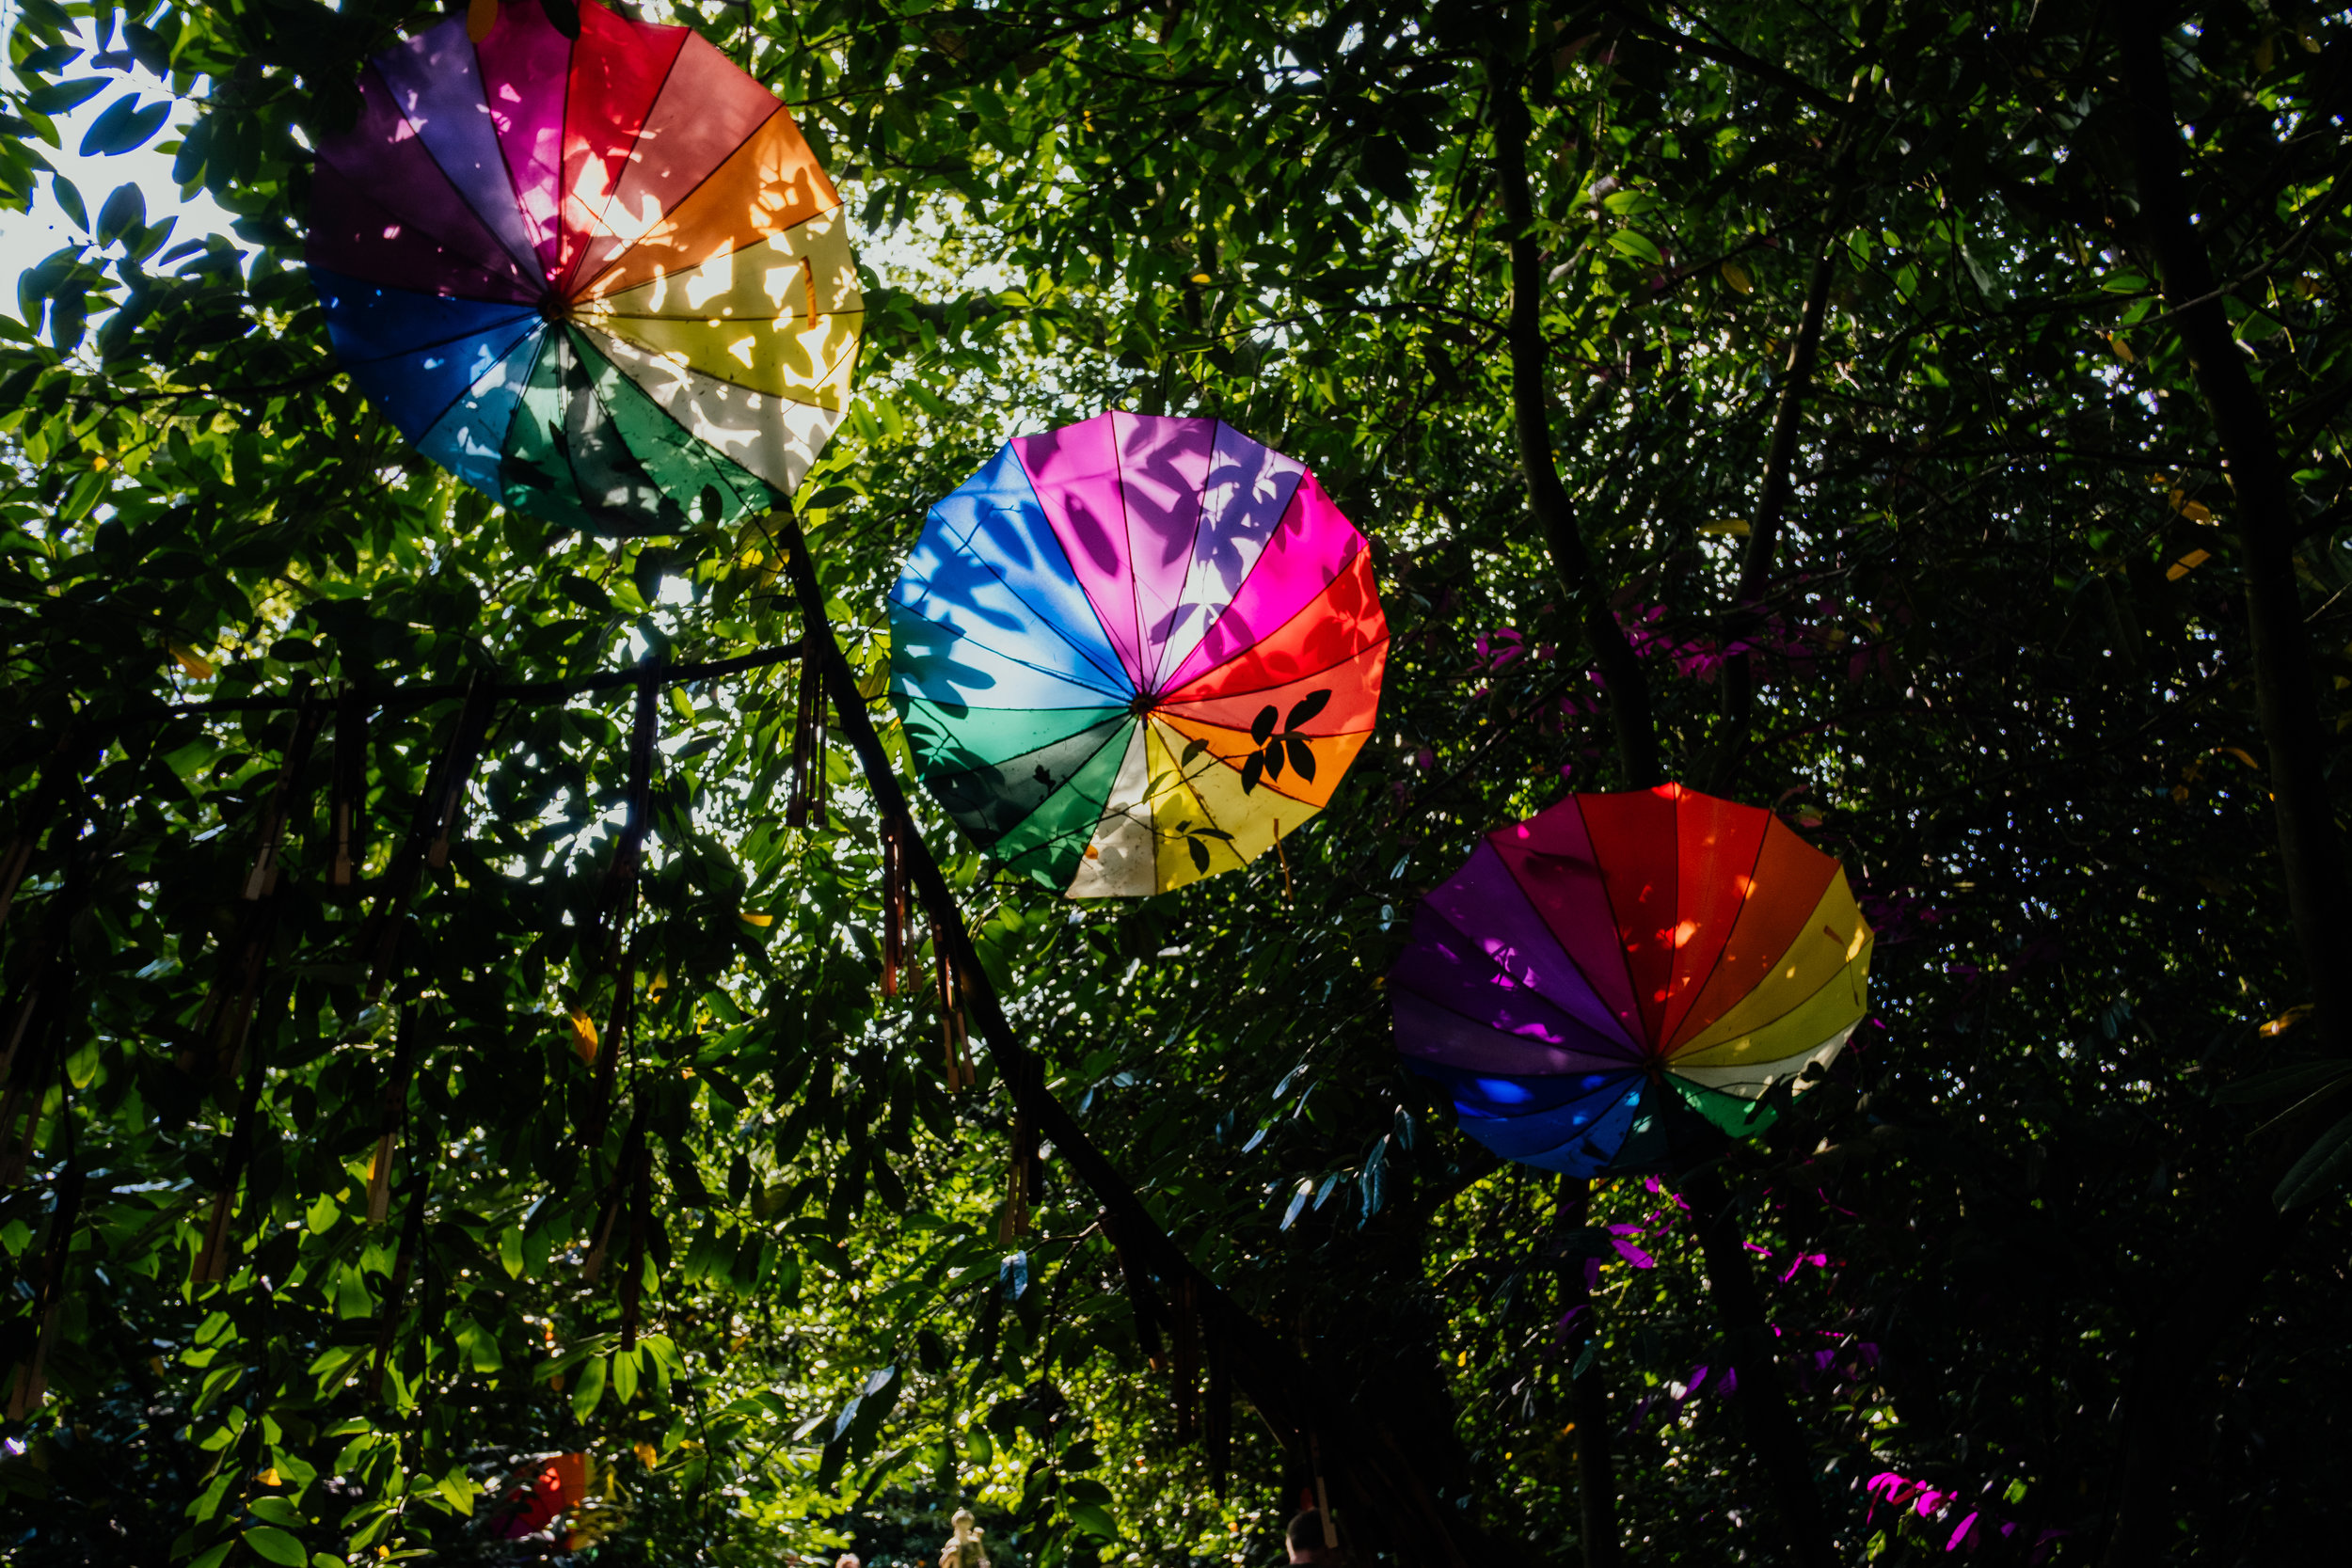 Larmer Tree Festival colourful umbrellas in the forest